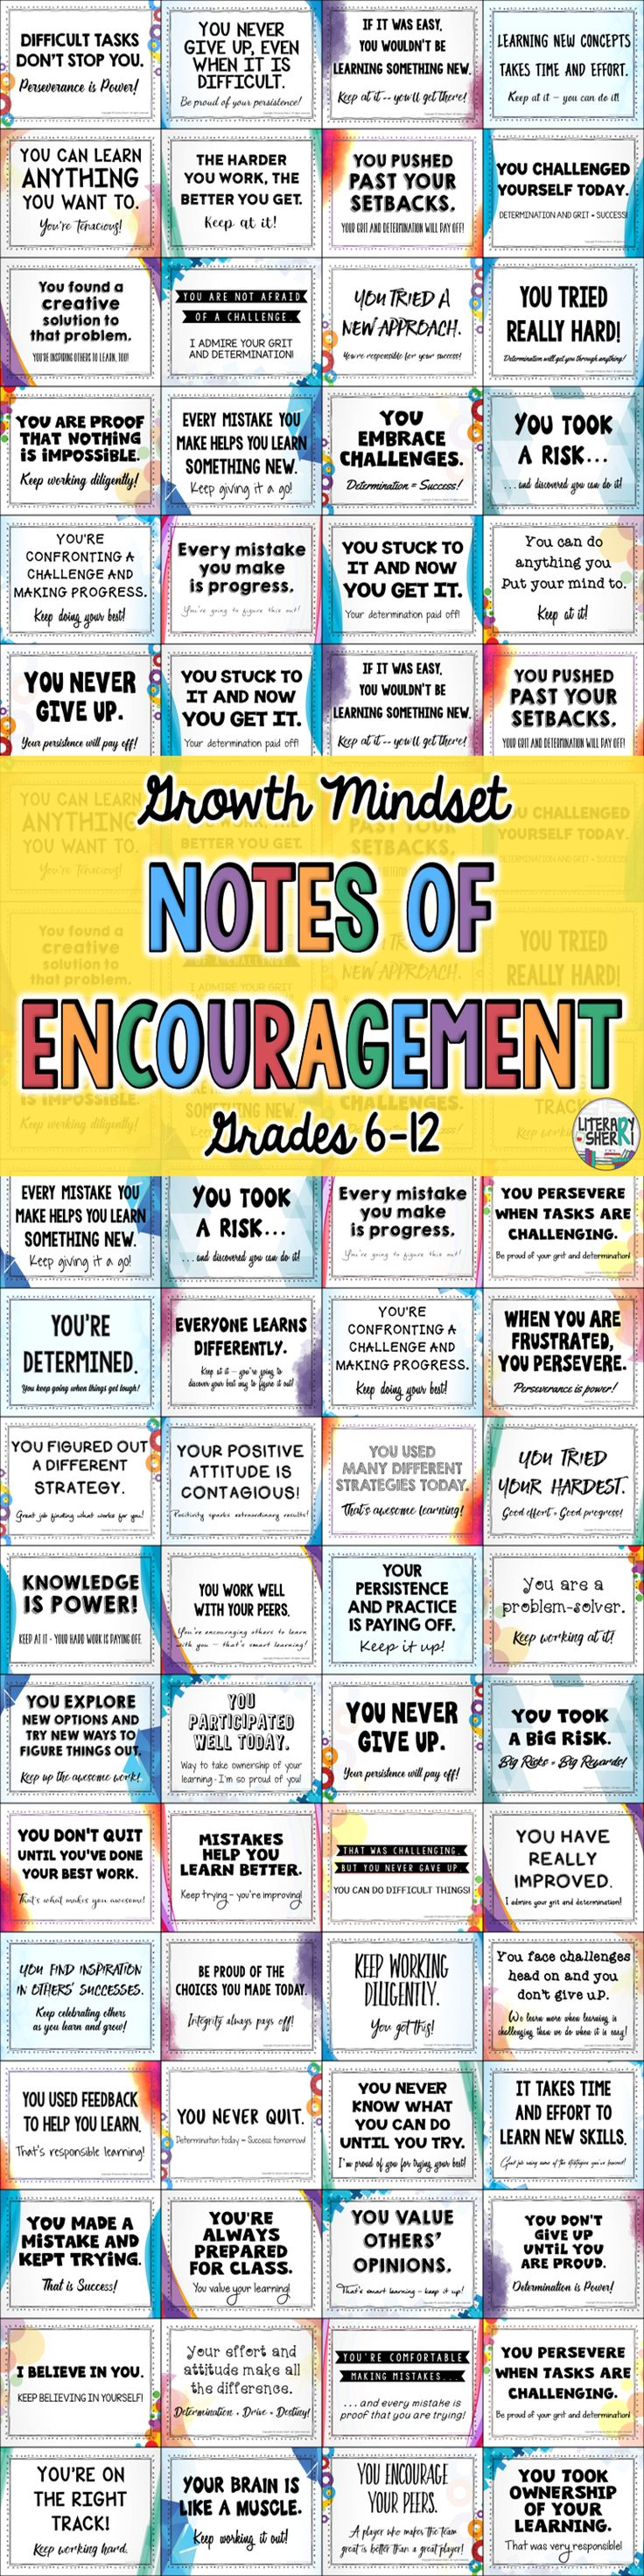 72 unique Growth Mindset Notes encourage middle school and high school students to